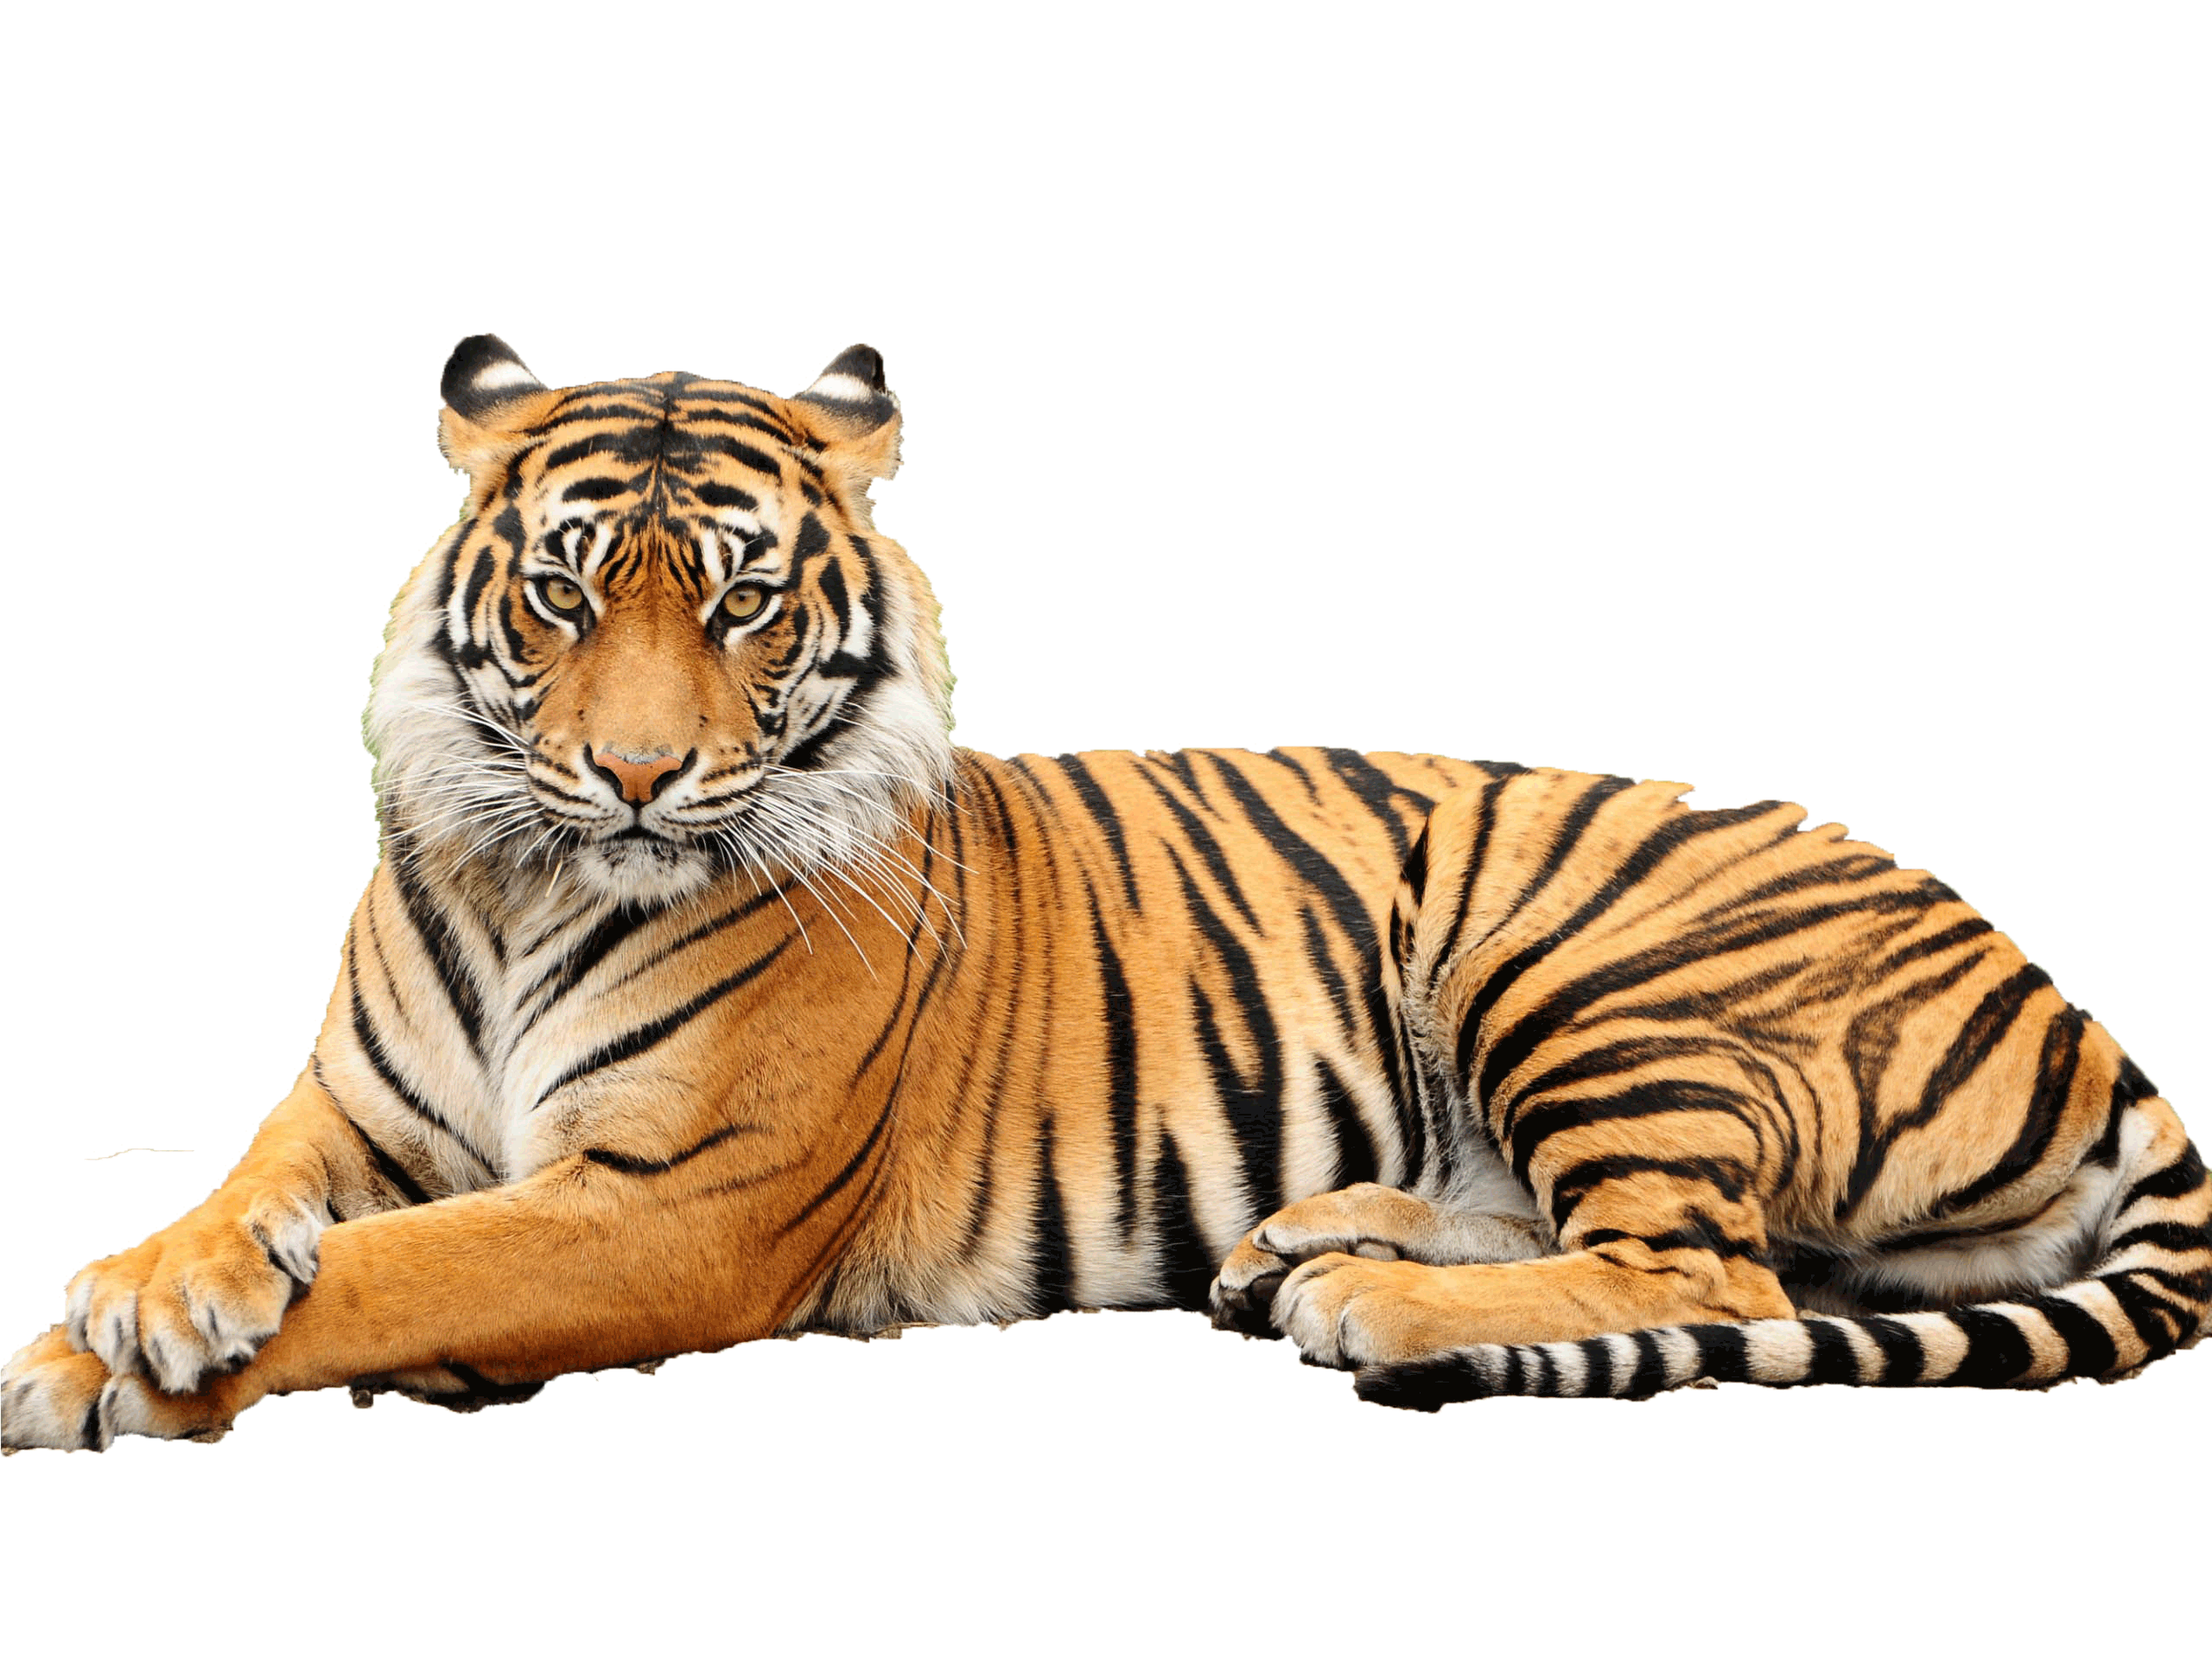 Across their range, tigers face unrelenting pressure from poaching, retaliatory killings and habitat loss. They are forced to compete for space with dense ...